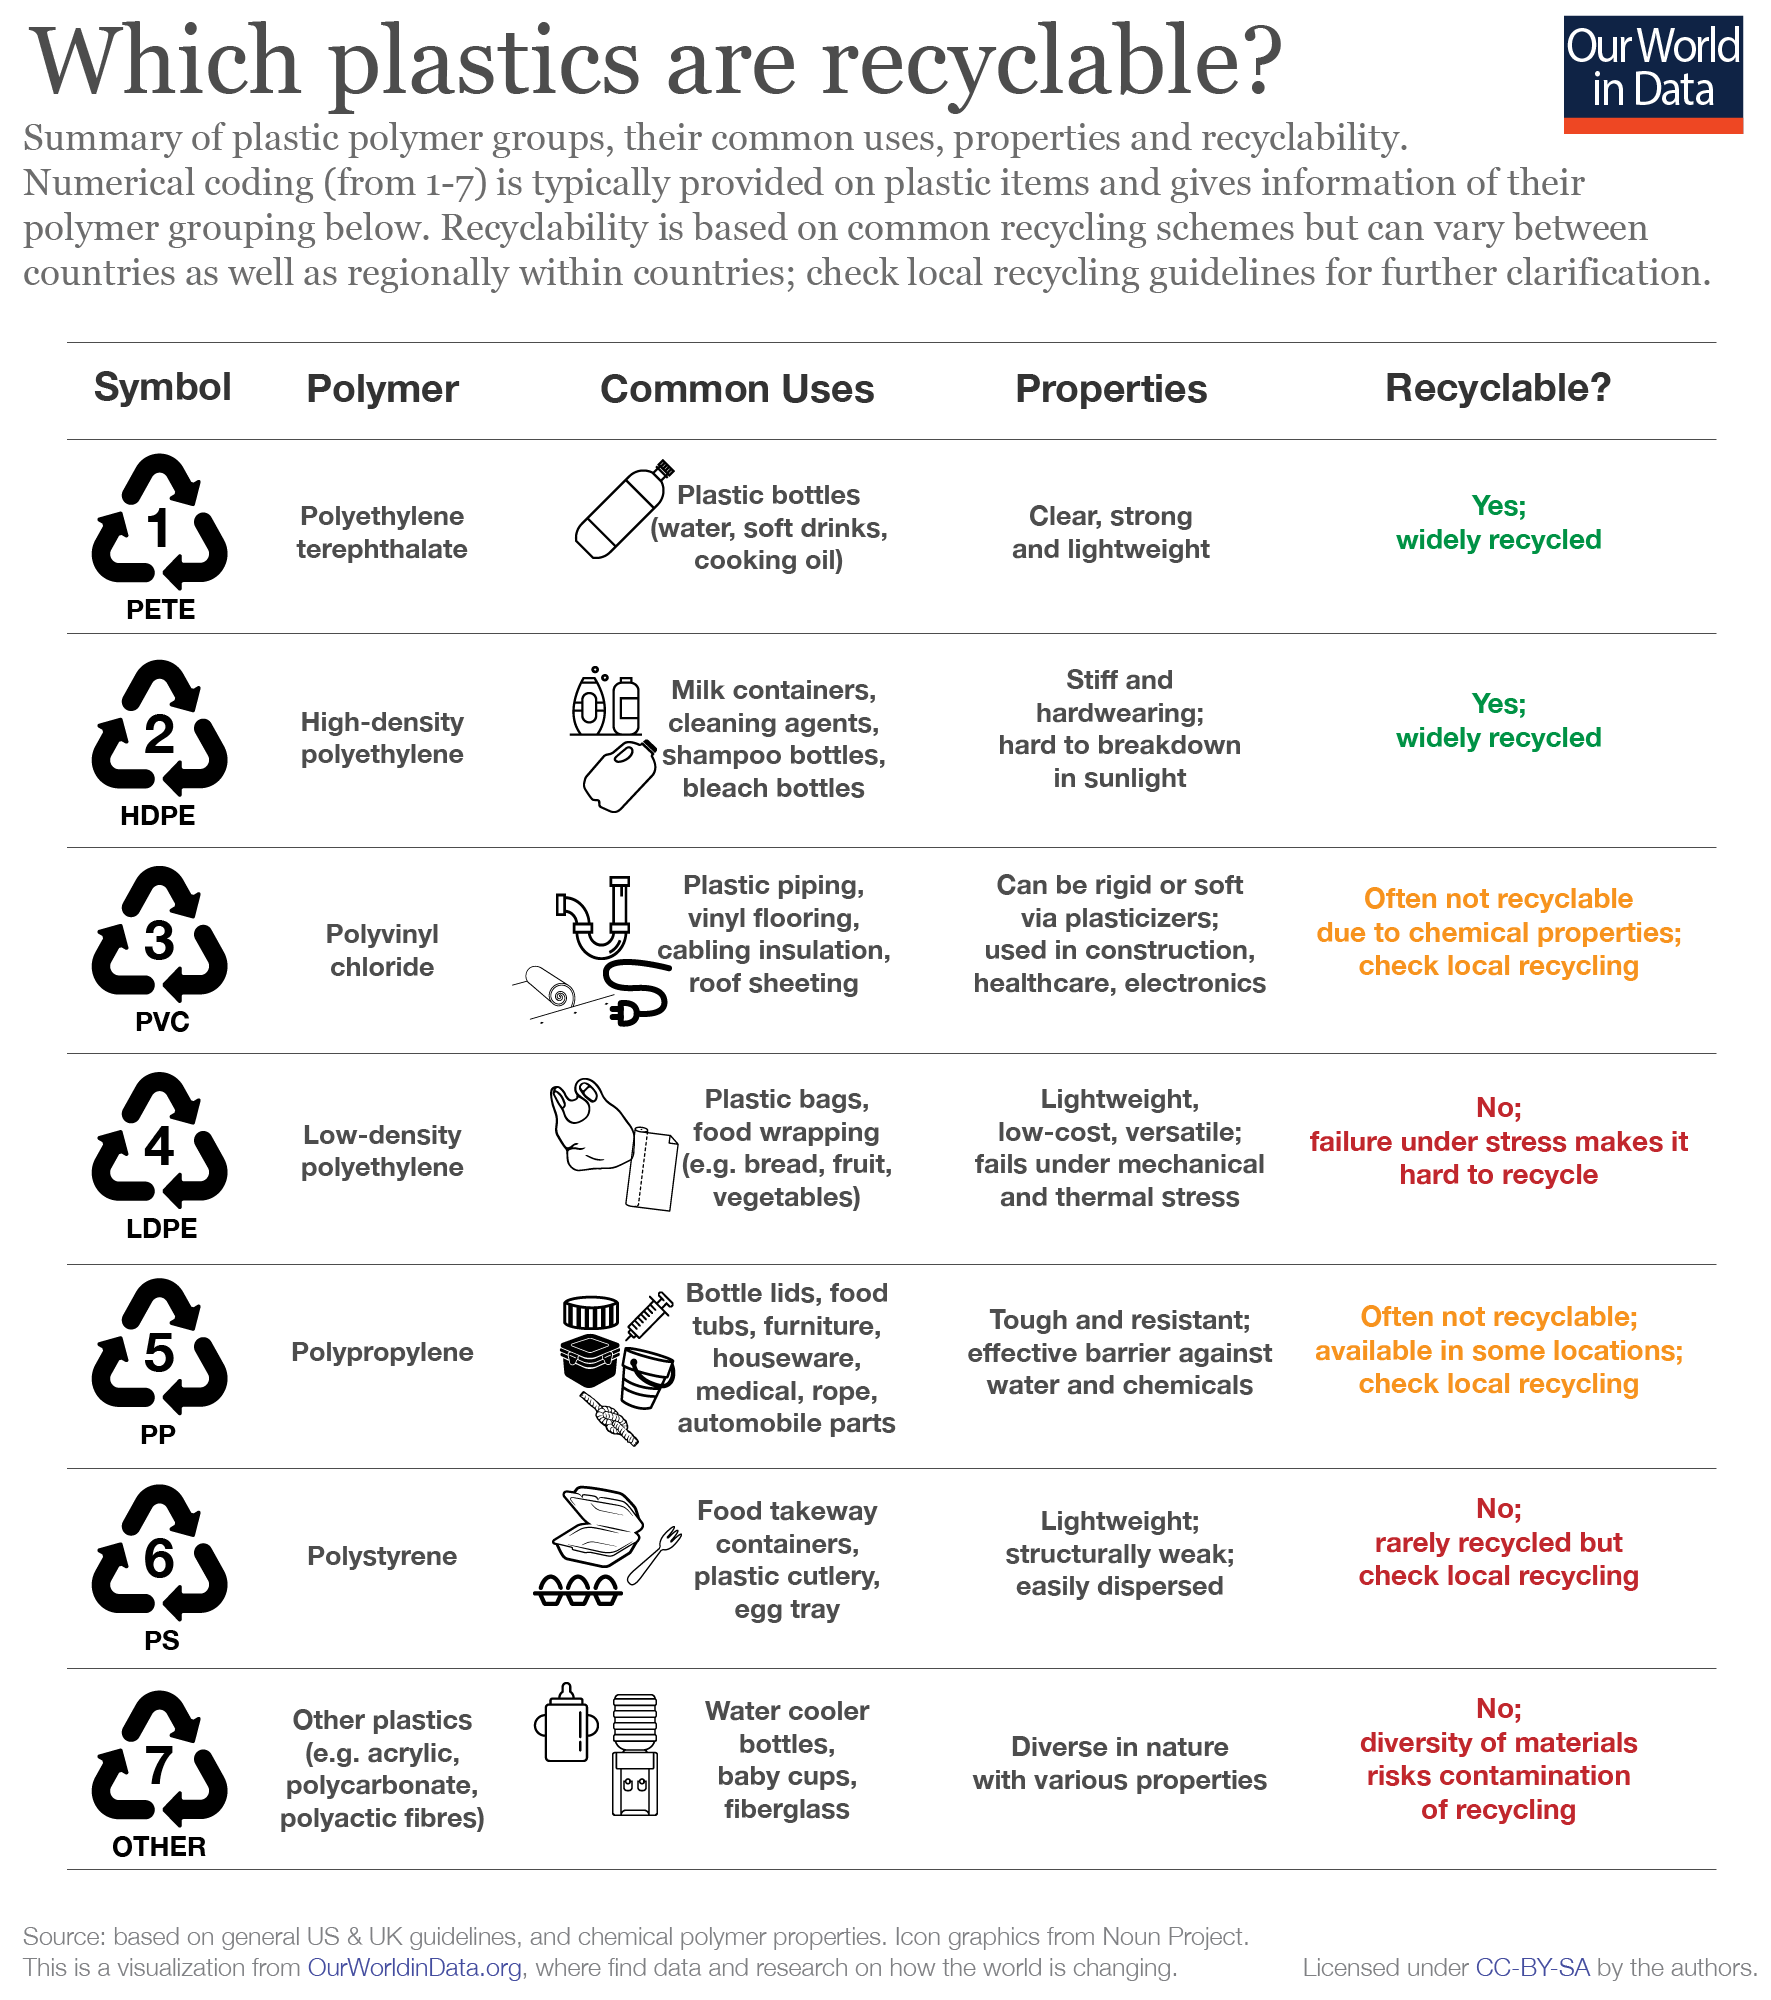 which plastics are recyclable